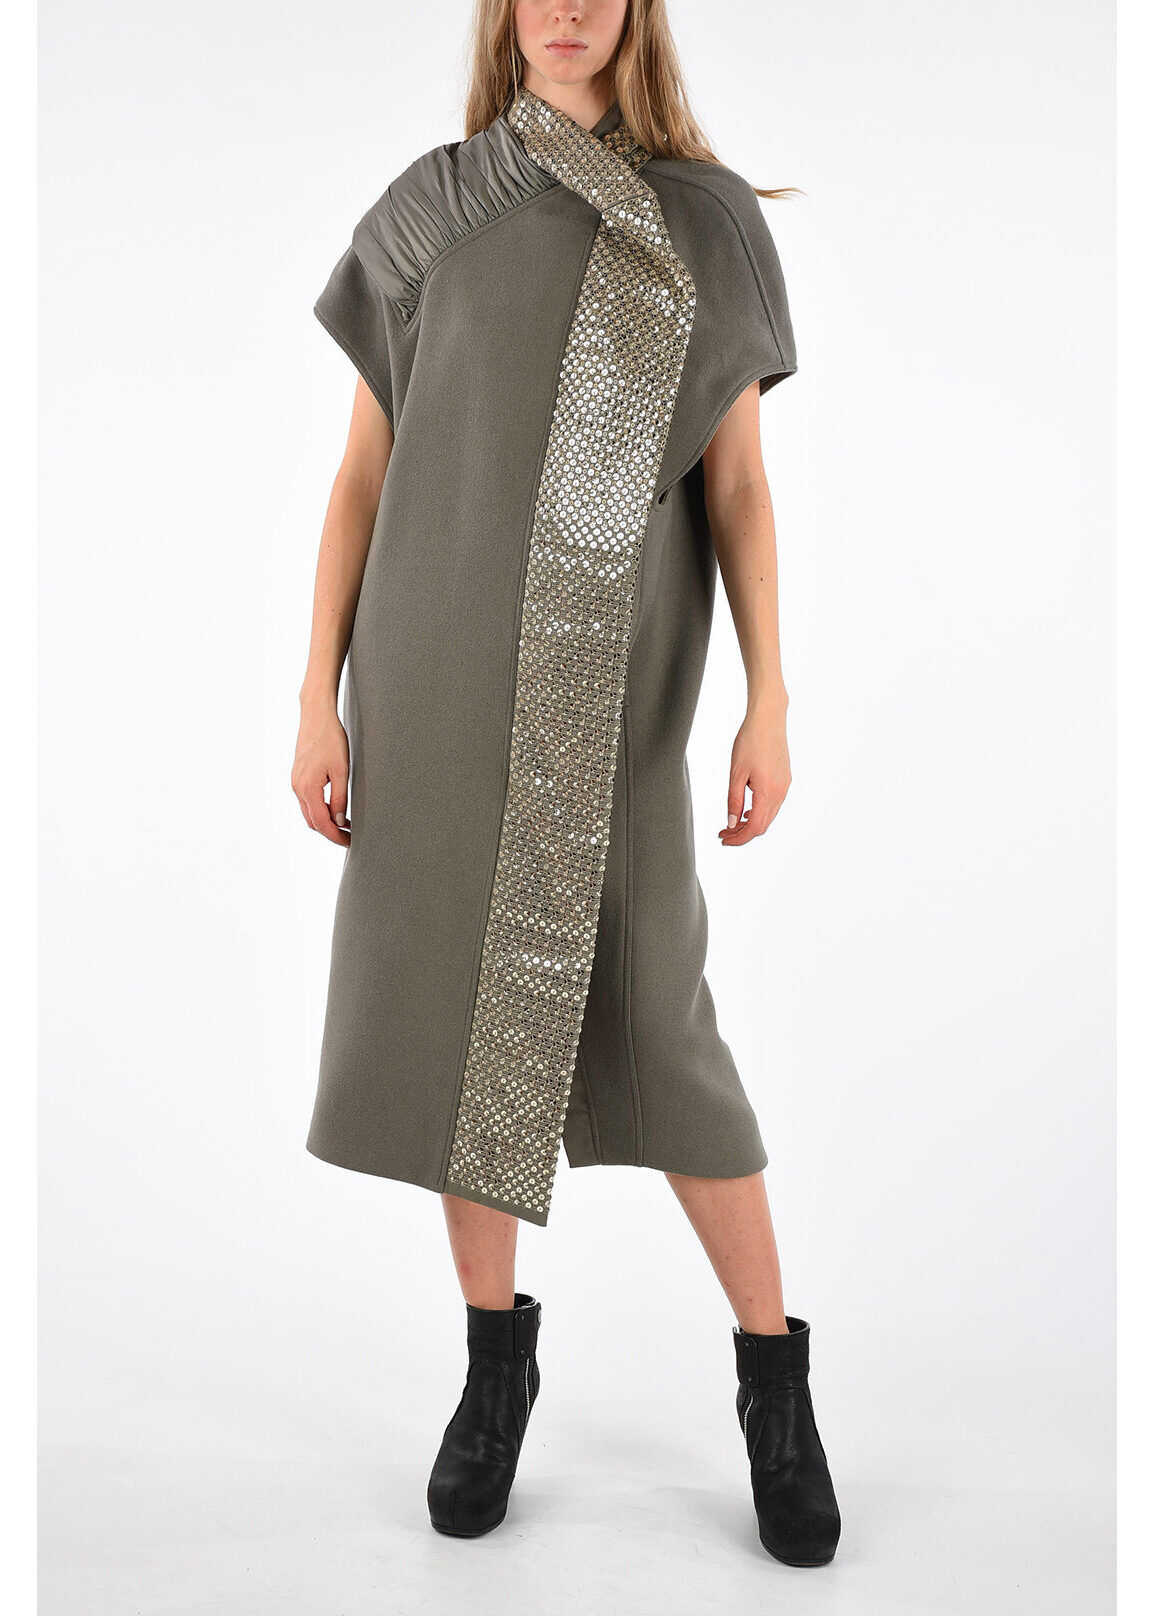 Sleeveless Coat DRKDST/WARM SILVER